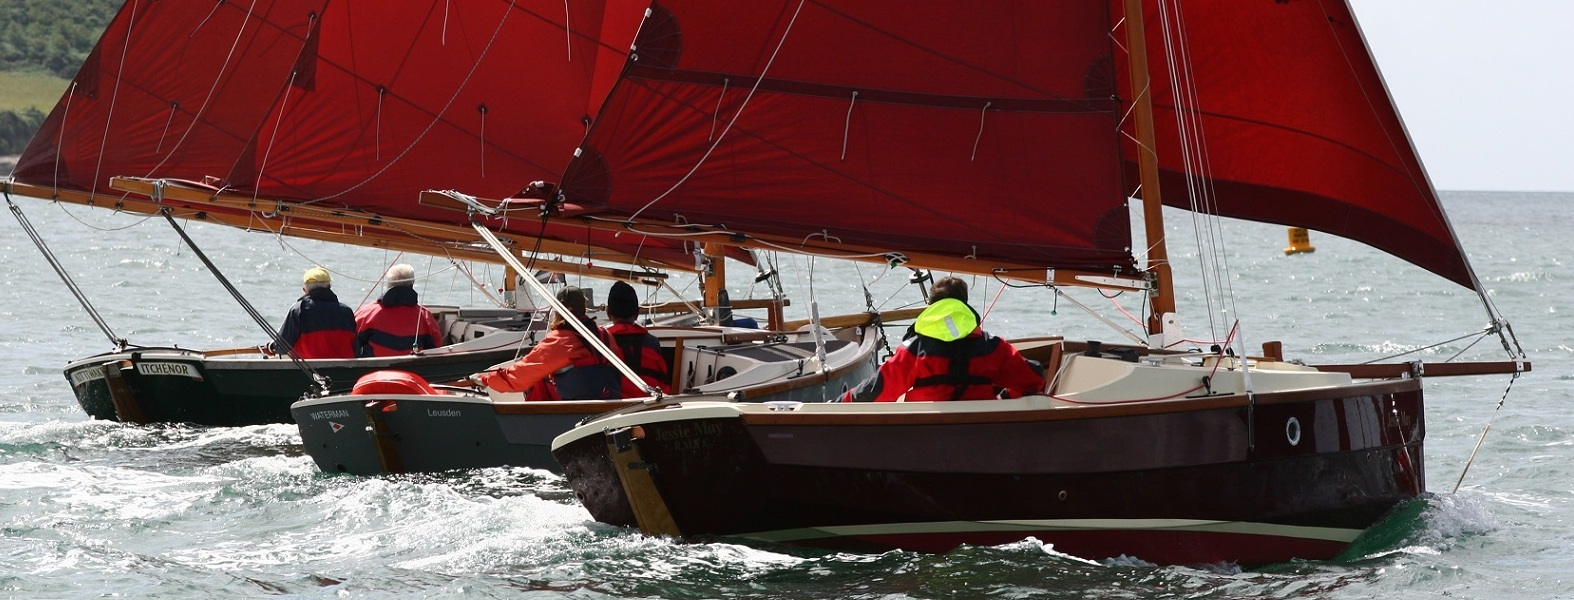 shrimper19-close-Rennen